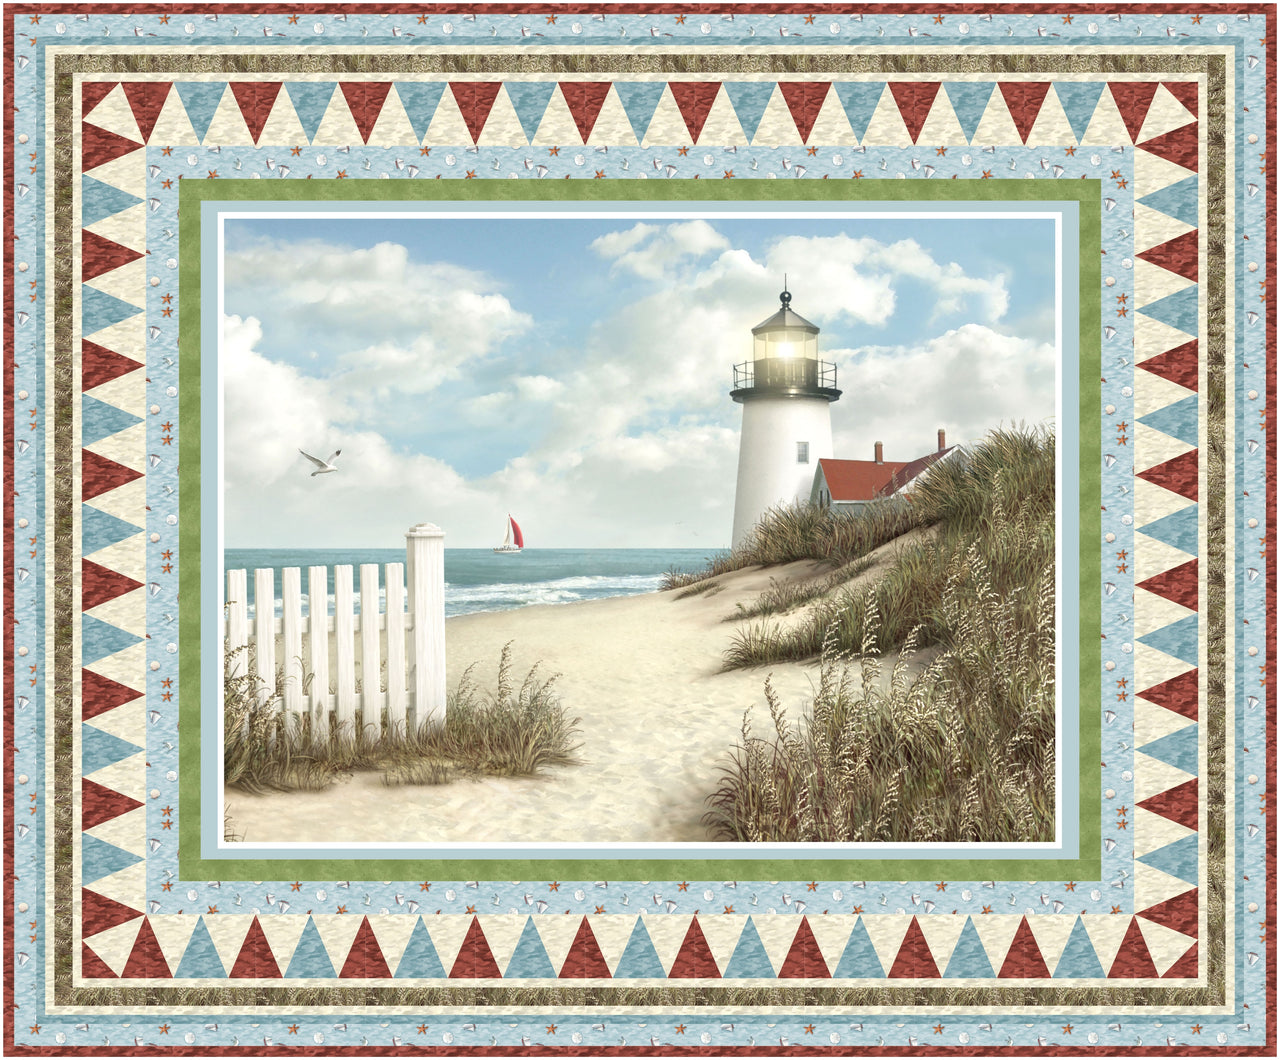 By the Peaceful Shore<br>by Denise Russell<br>Available Now!